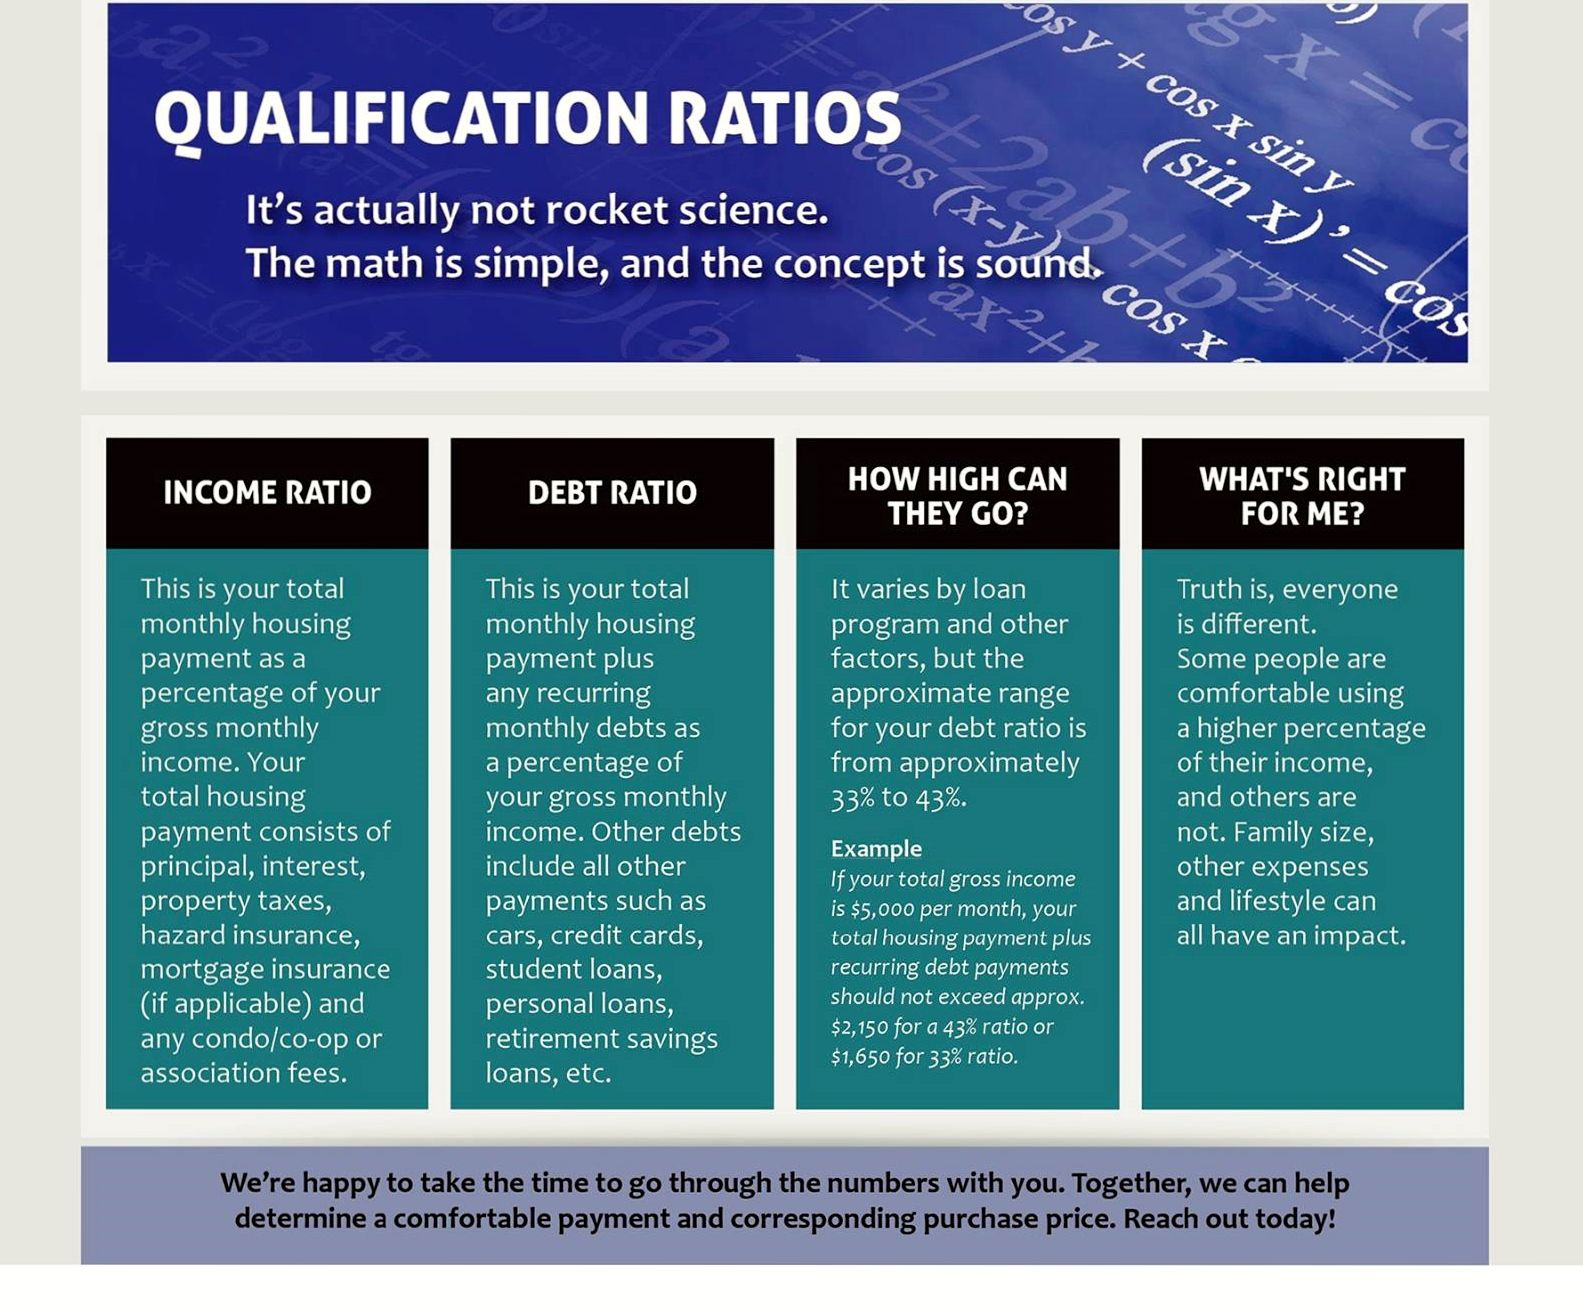 Getting A Qualified Mortgage Means Better Rates And Terms Learn